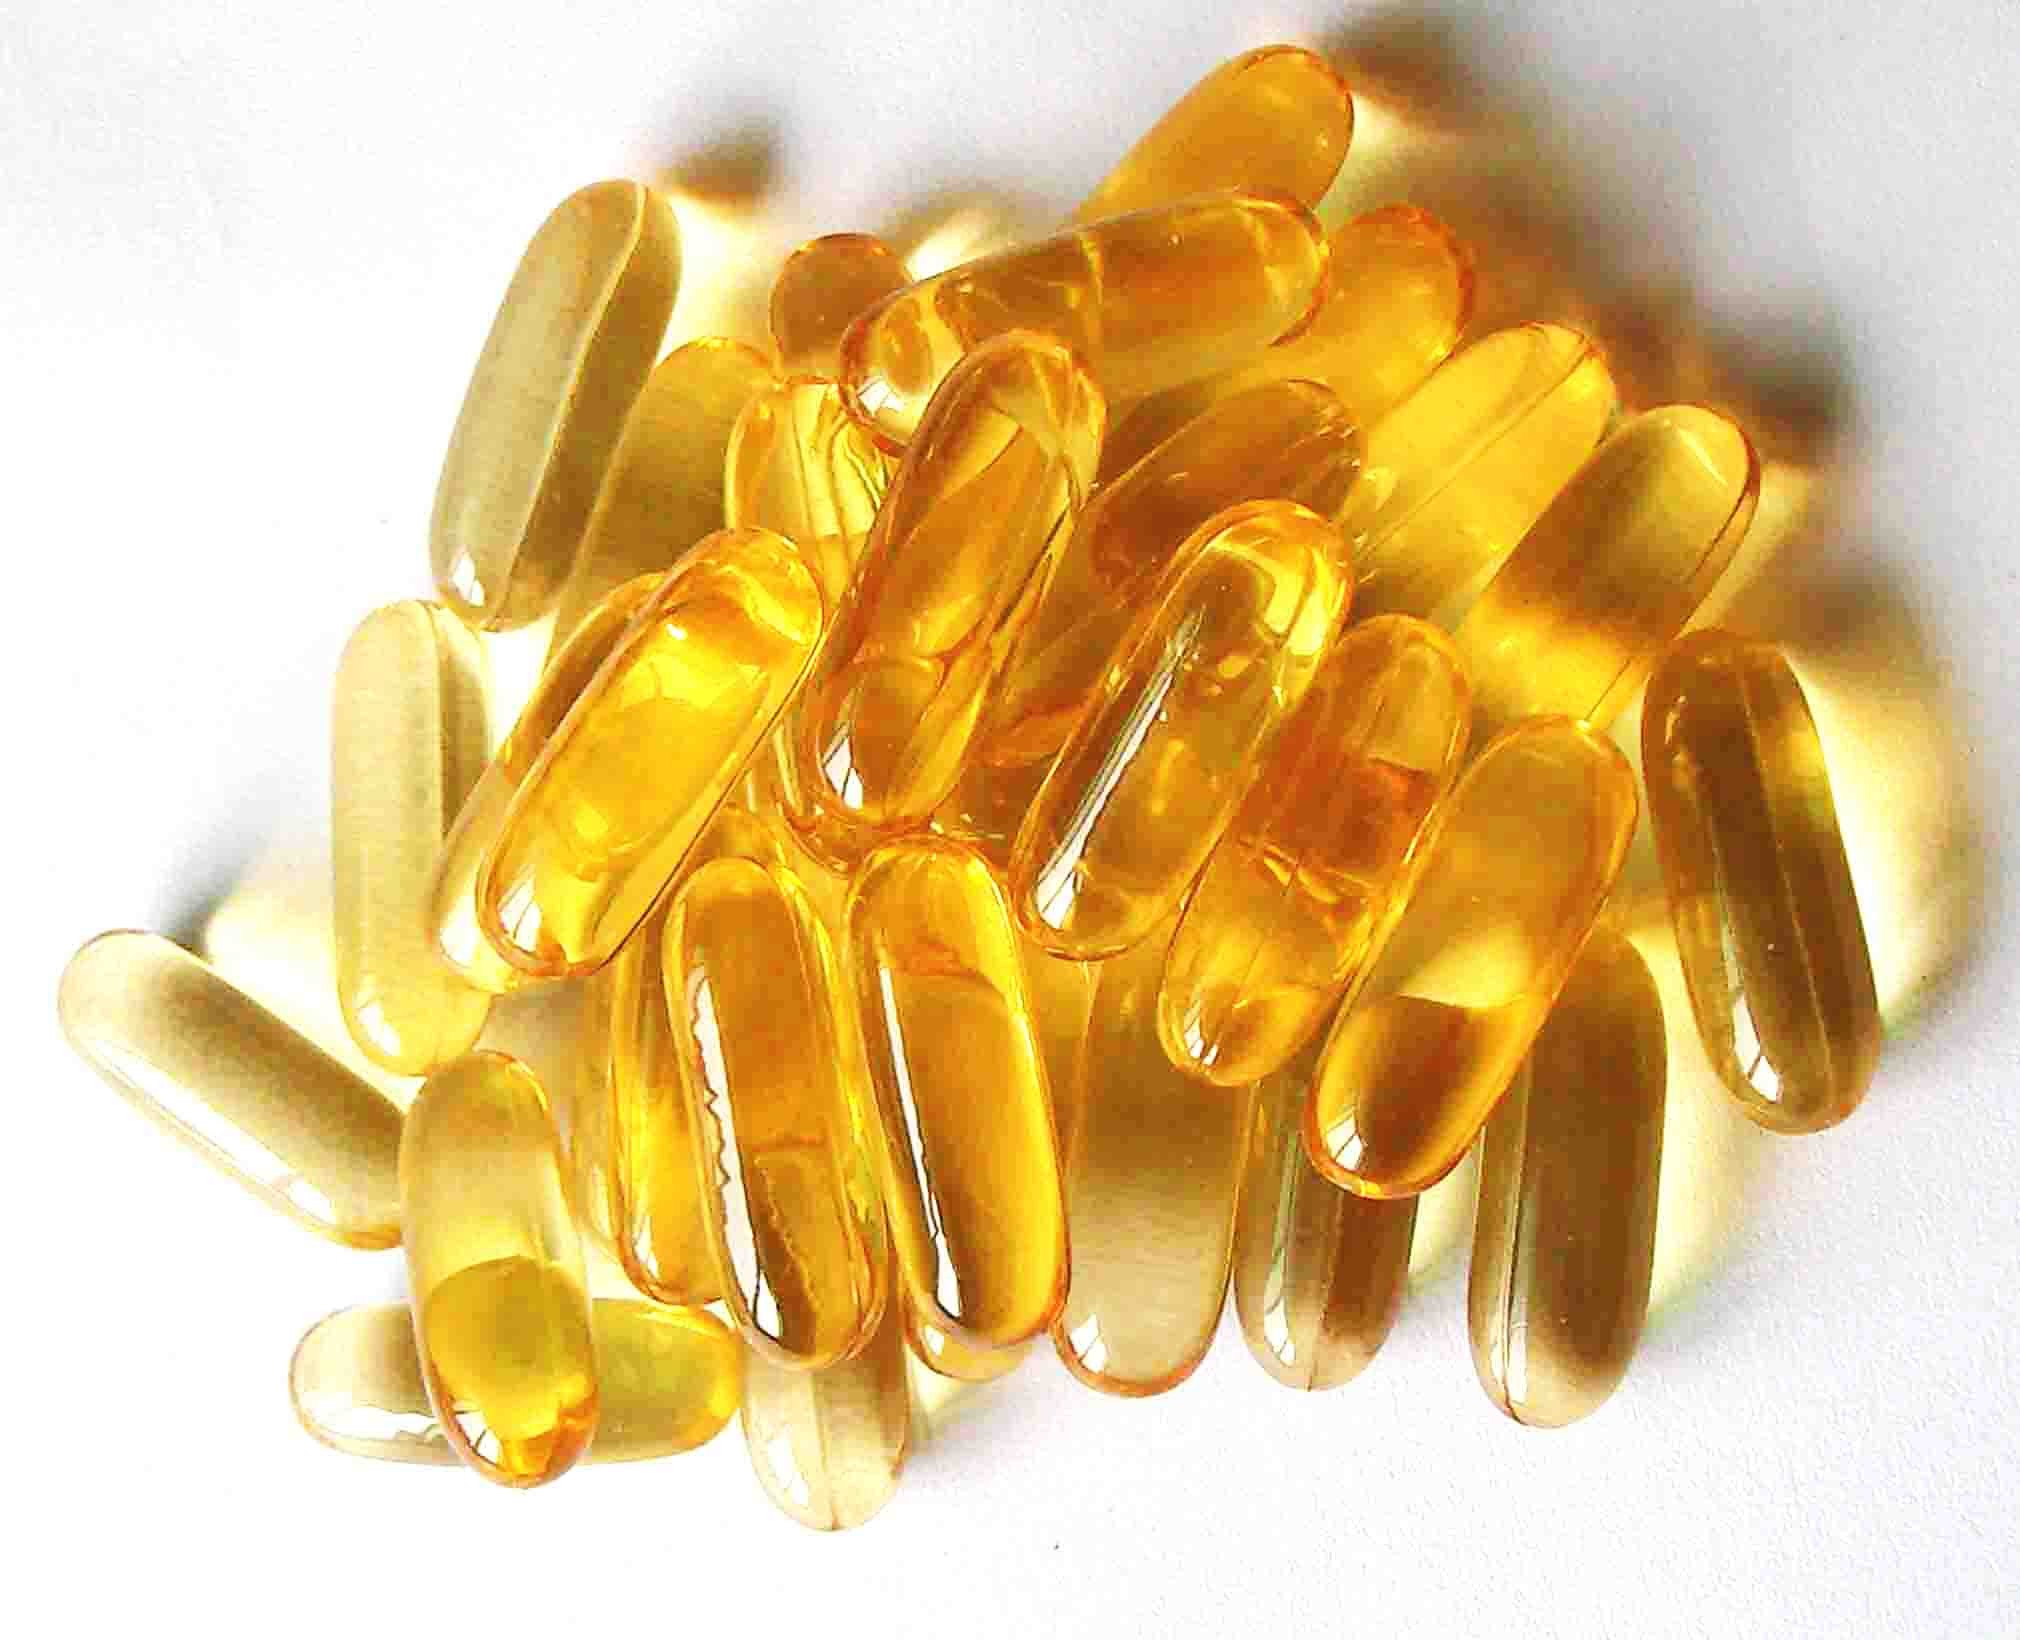 Image gallery omega 3 capsules for Fish oil capsules side effects